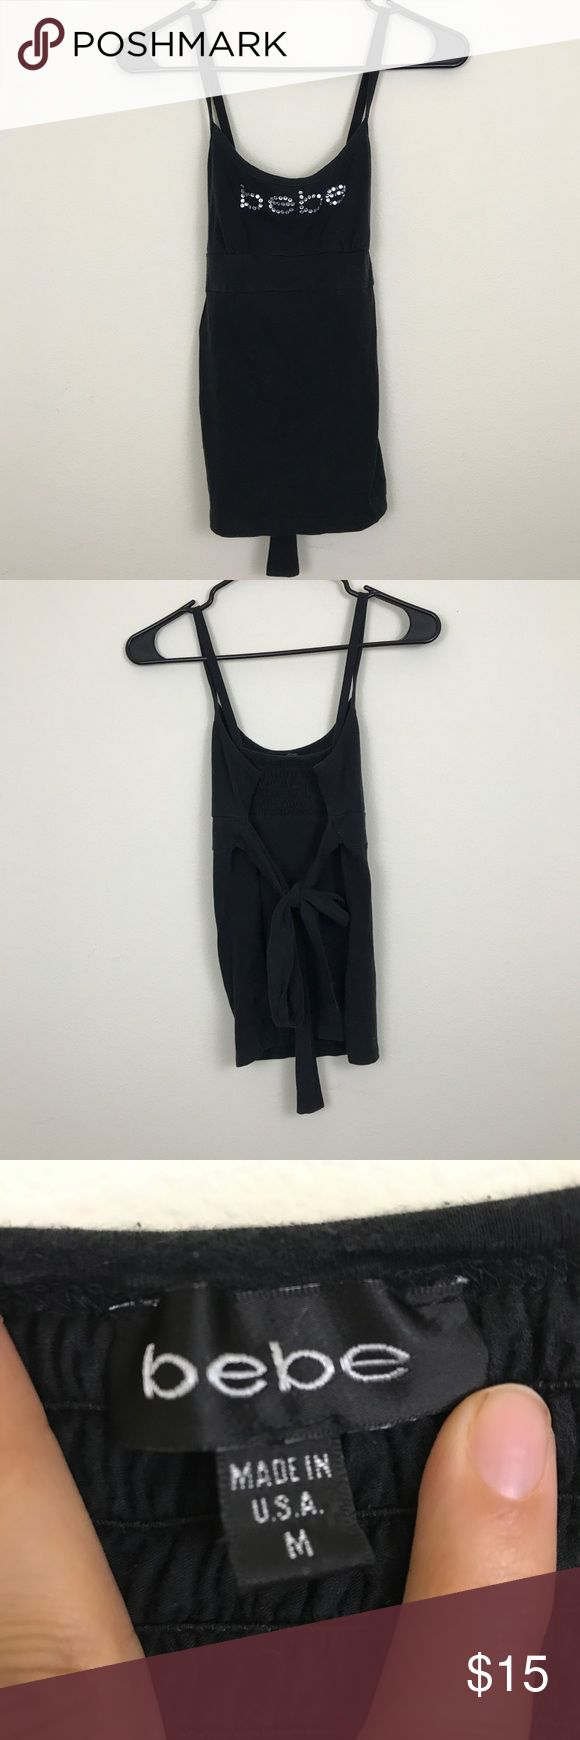 Bebe Black Rhinestone Camisole Tank In good condition; all rhinestones are intact▪️Size Medium▪️ Fabric content unknown, tag was ripped. Feels like 100% Cotton▪️ bebe Tops Camisoles